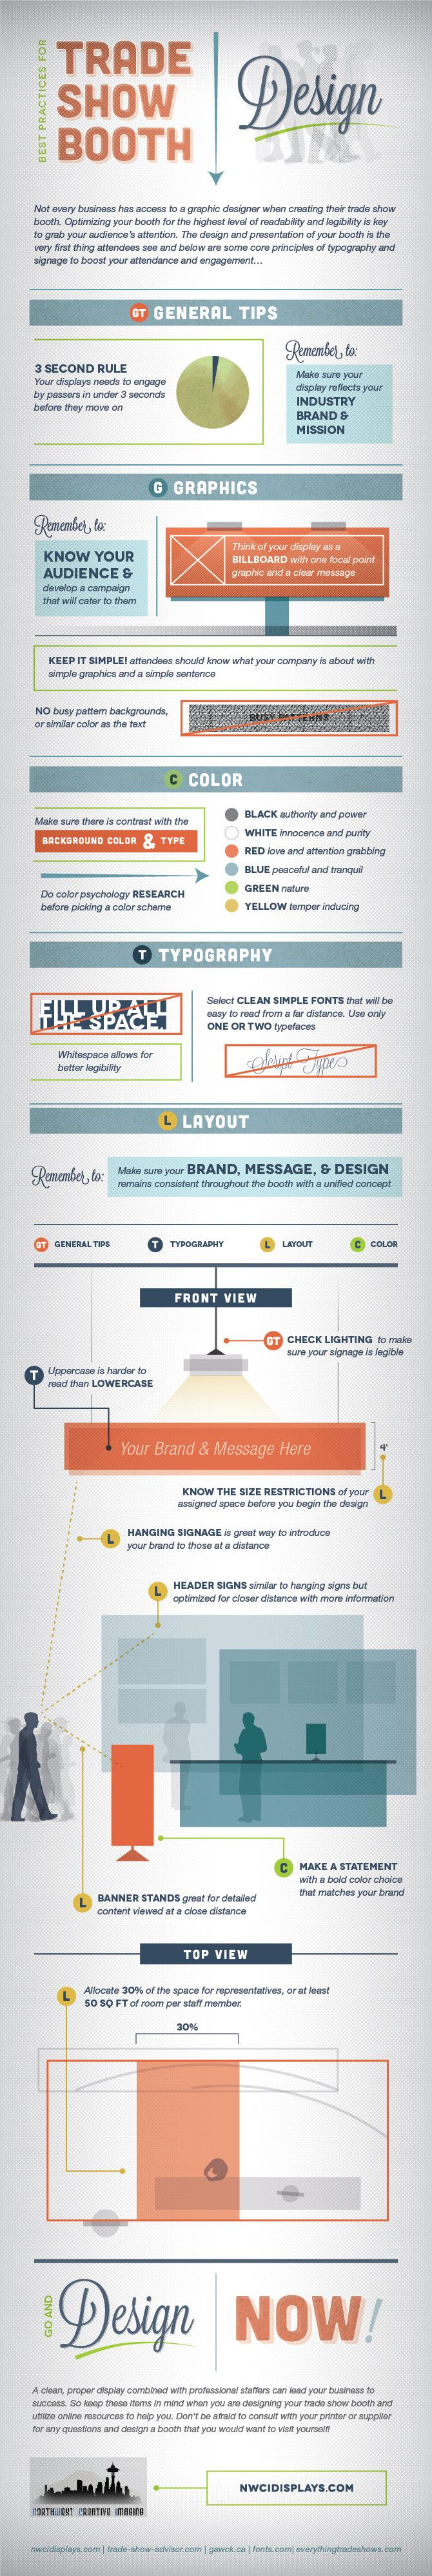 Best Practices for Trade Show Booth Design #infographic #TradeShow #Business…